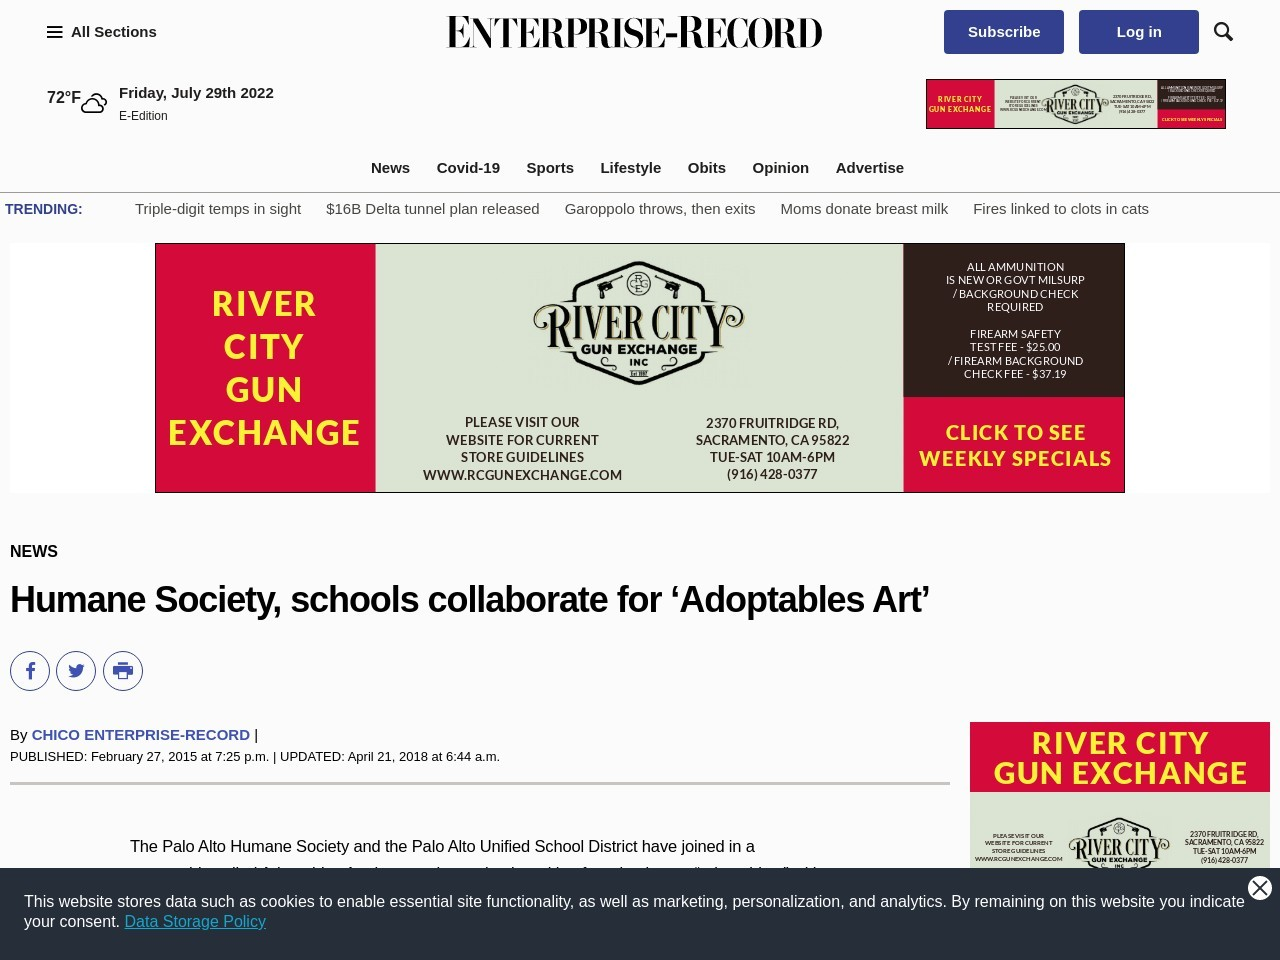 Humane Society, schools collaborate for 'Adoptables Art'